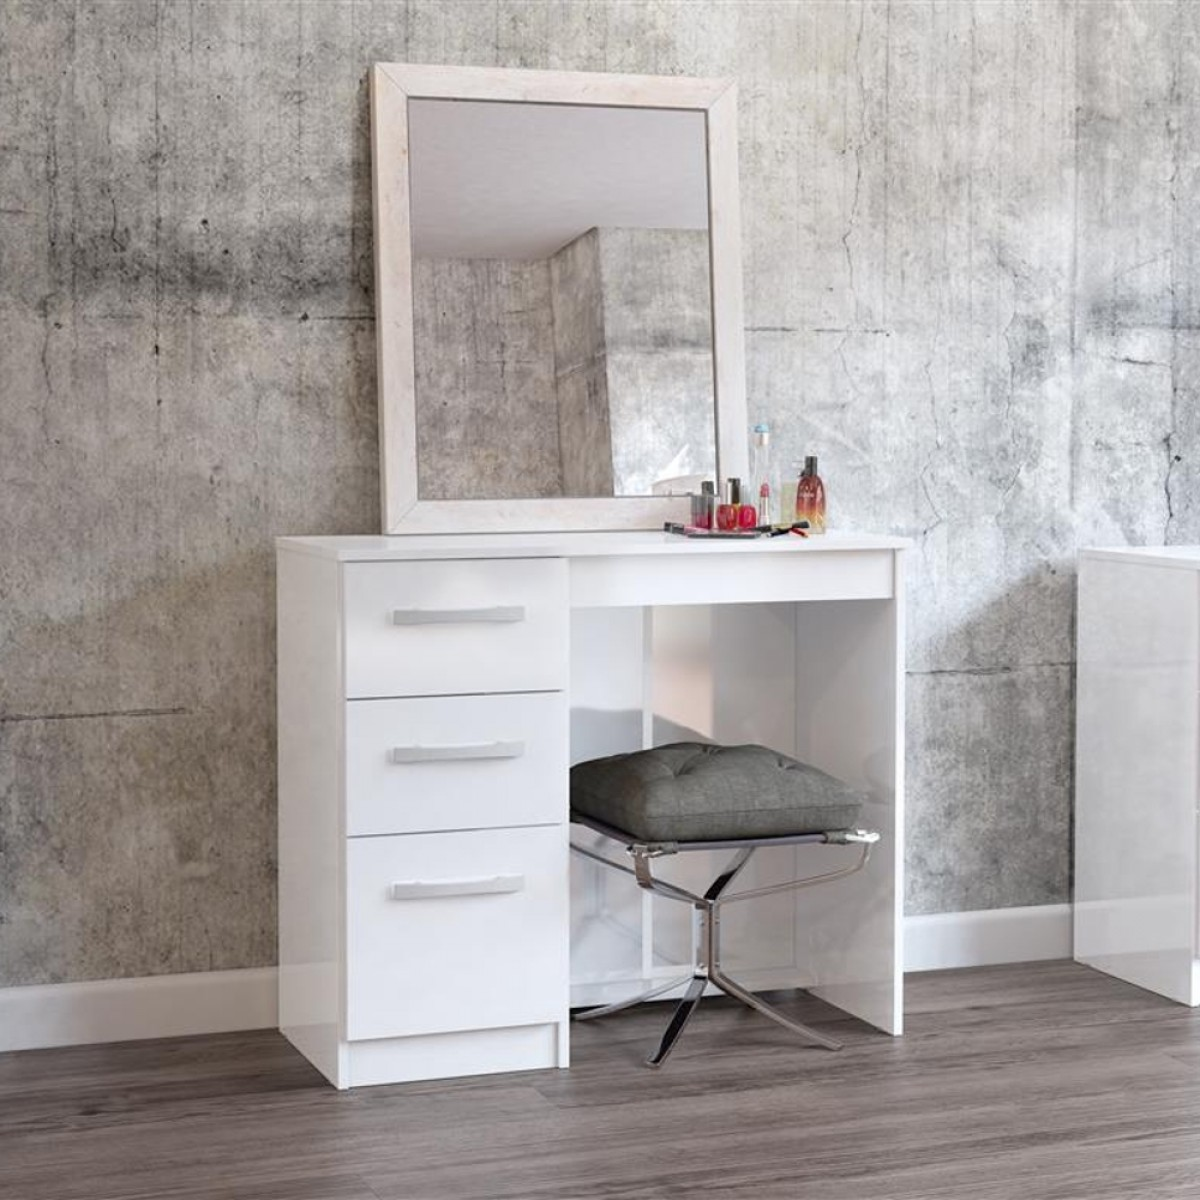 lynx 3 drawer dressing table white. Black Bedroom Furniture Sets. Home Design Ideas